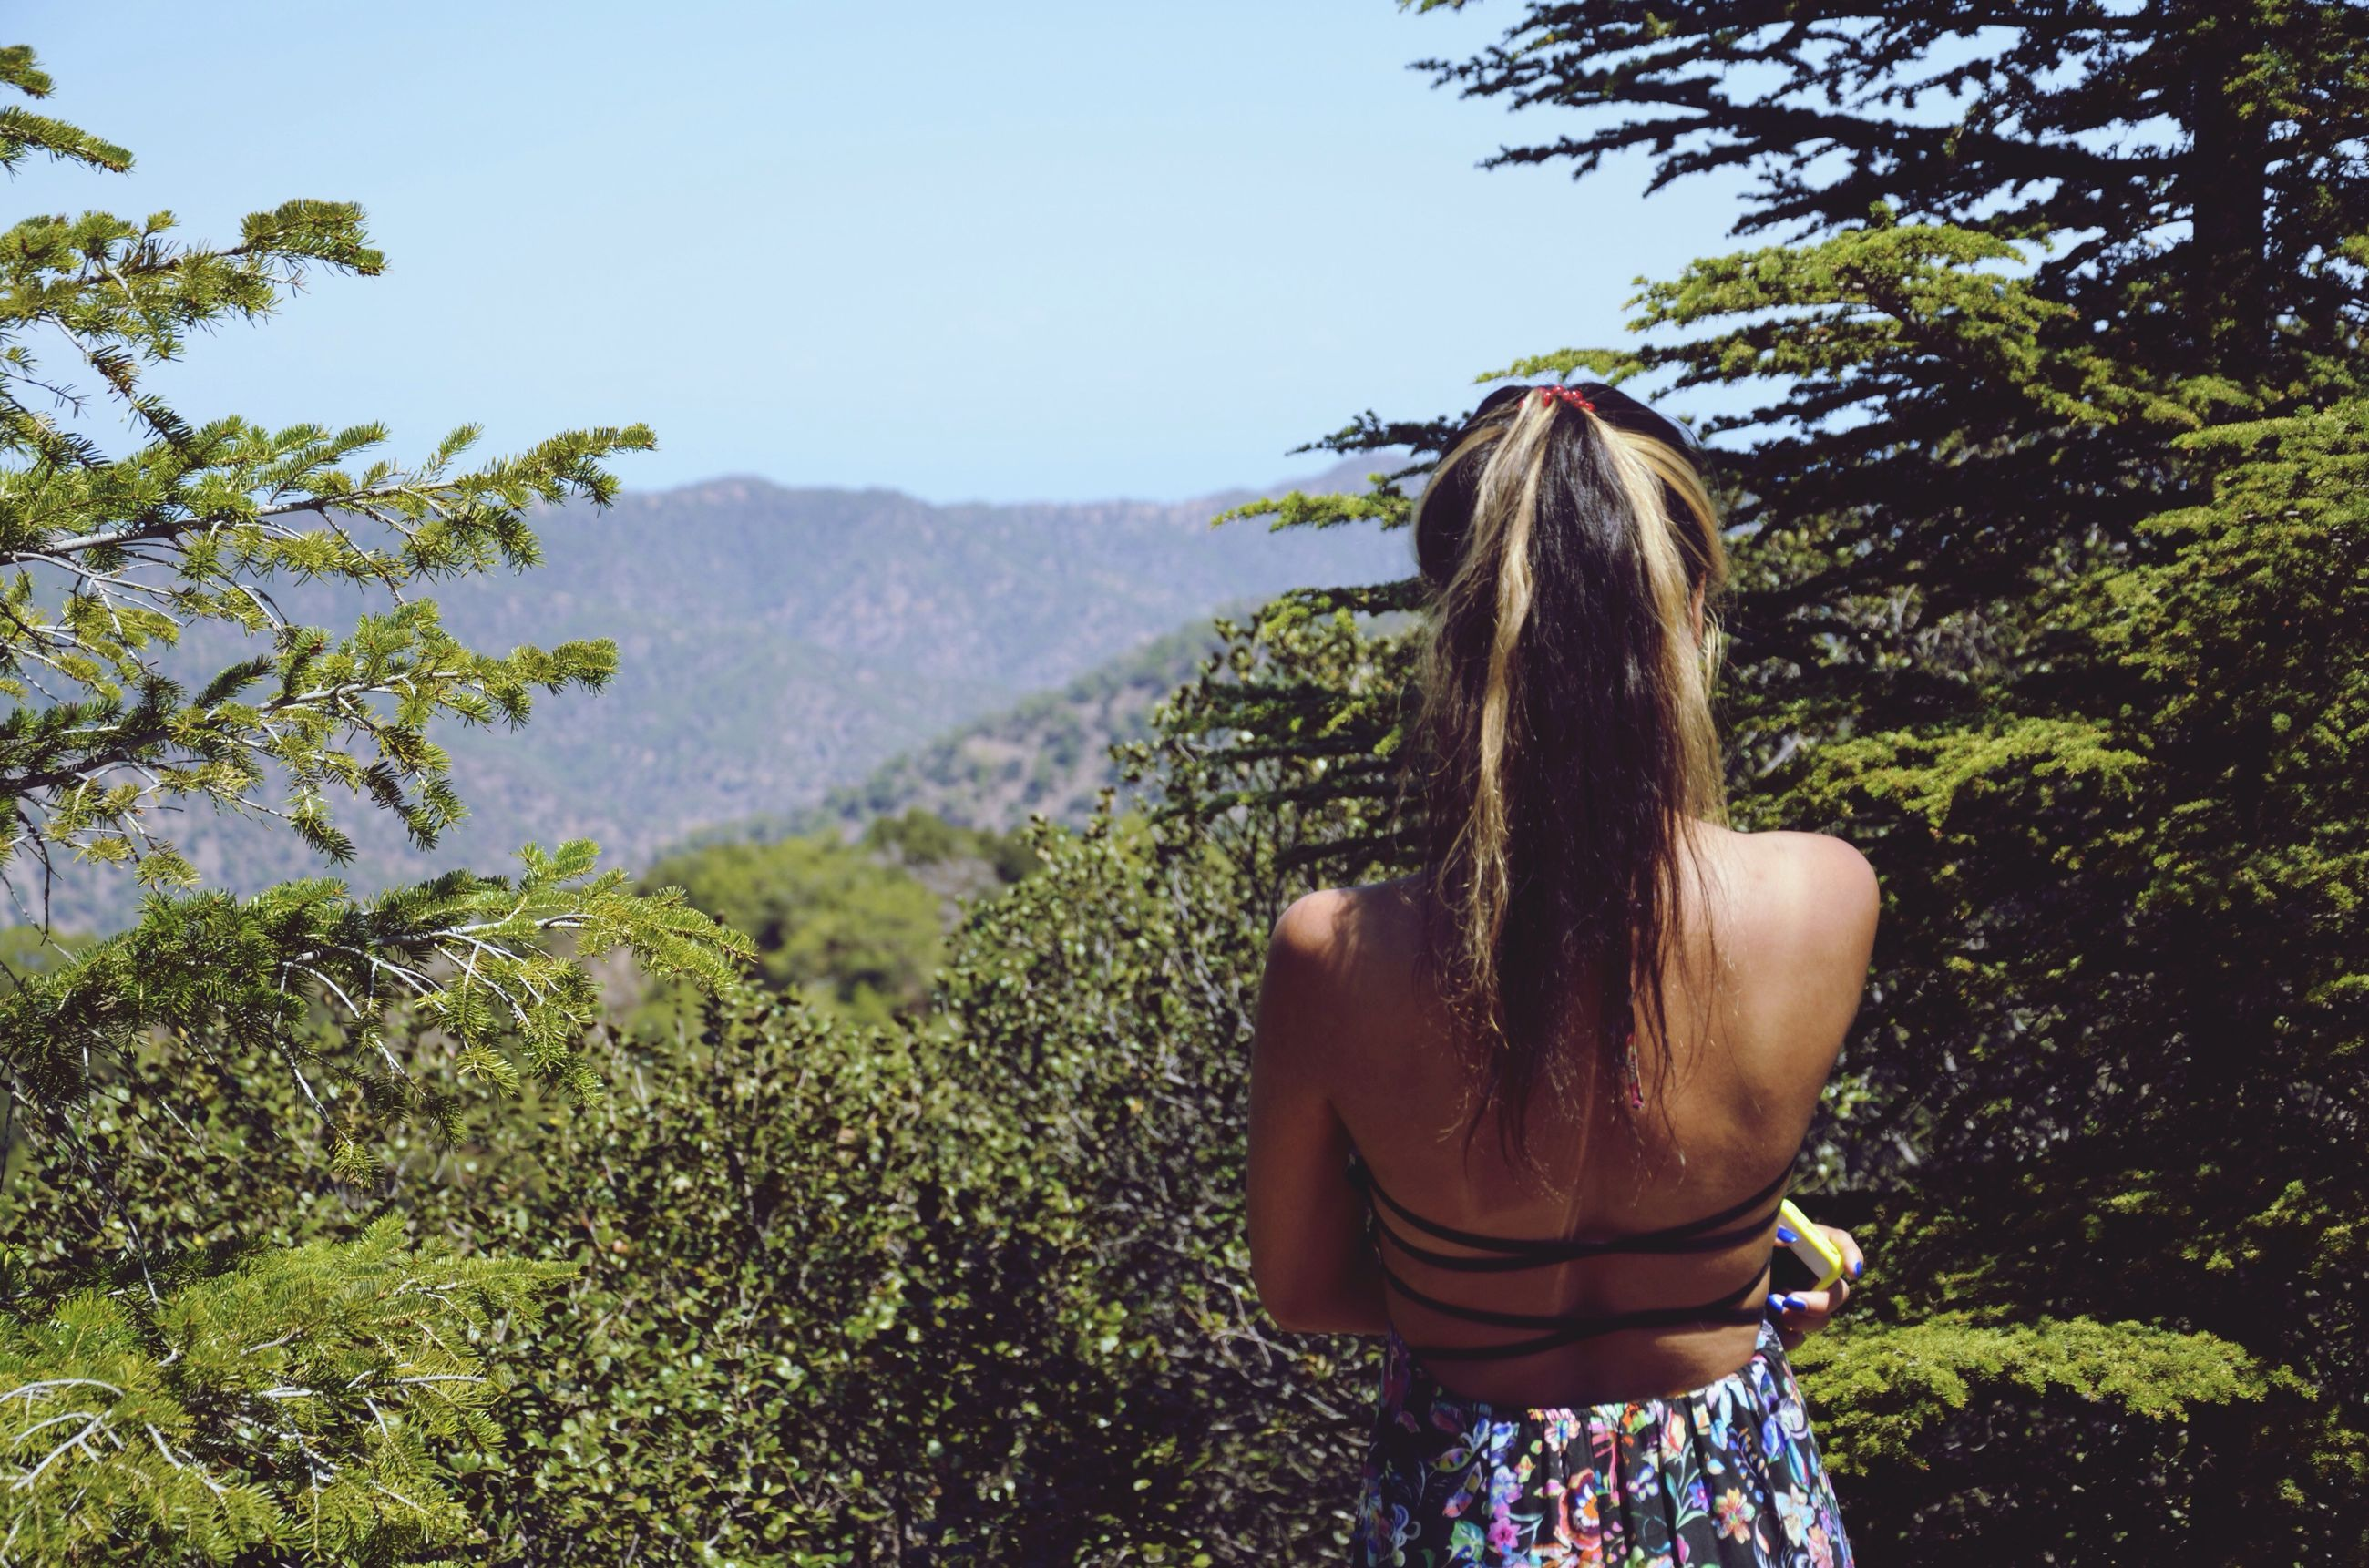 tree, rear view, waist up, standing, tranquil scene, mountain, long hair, landscape, clear sky, scenics, person, tranquility, casual clothing, solitude, idyllic, getting away from it all, lush foliage, nature, beauty in nature, one young woman only, sunny, countryside, weekend activities, remote, growth, day, escapism